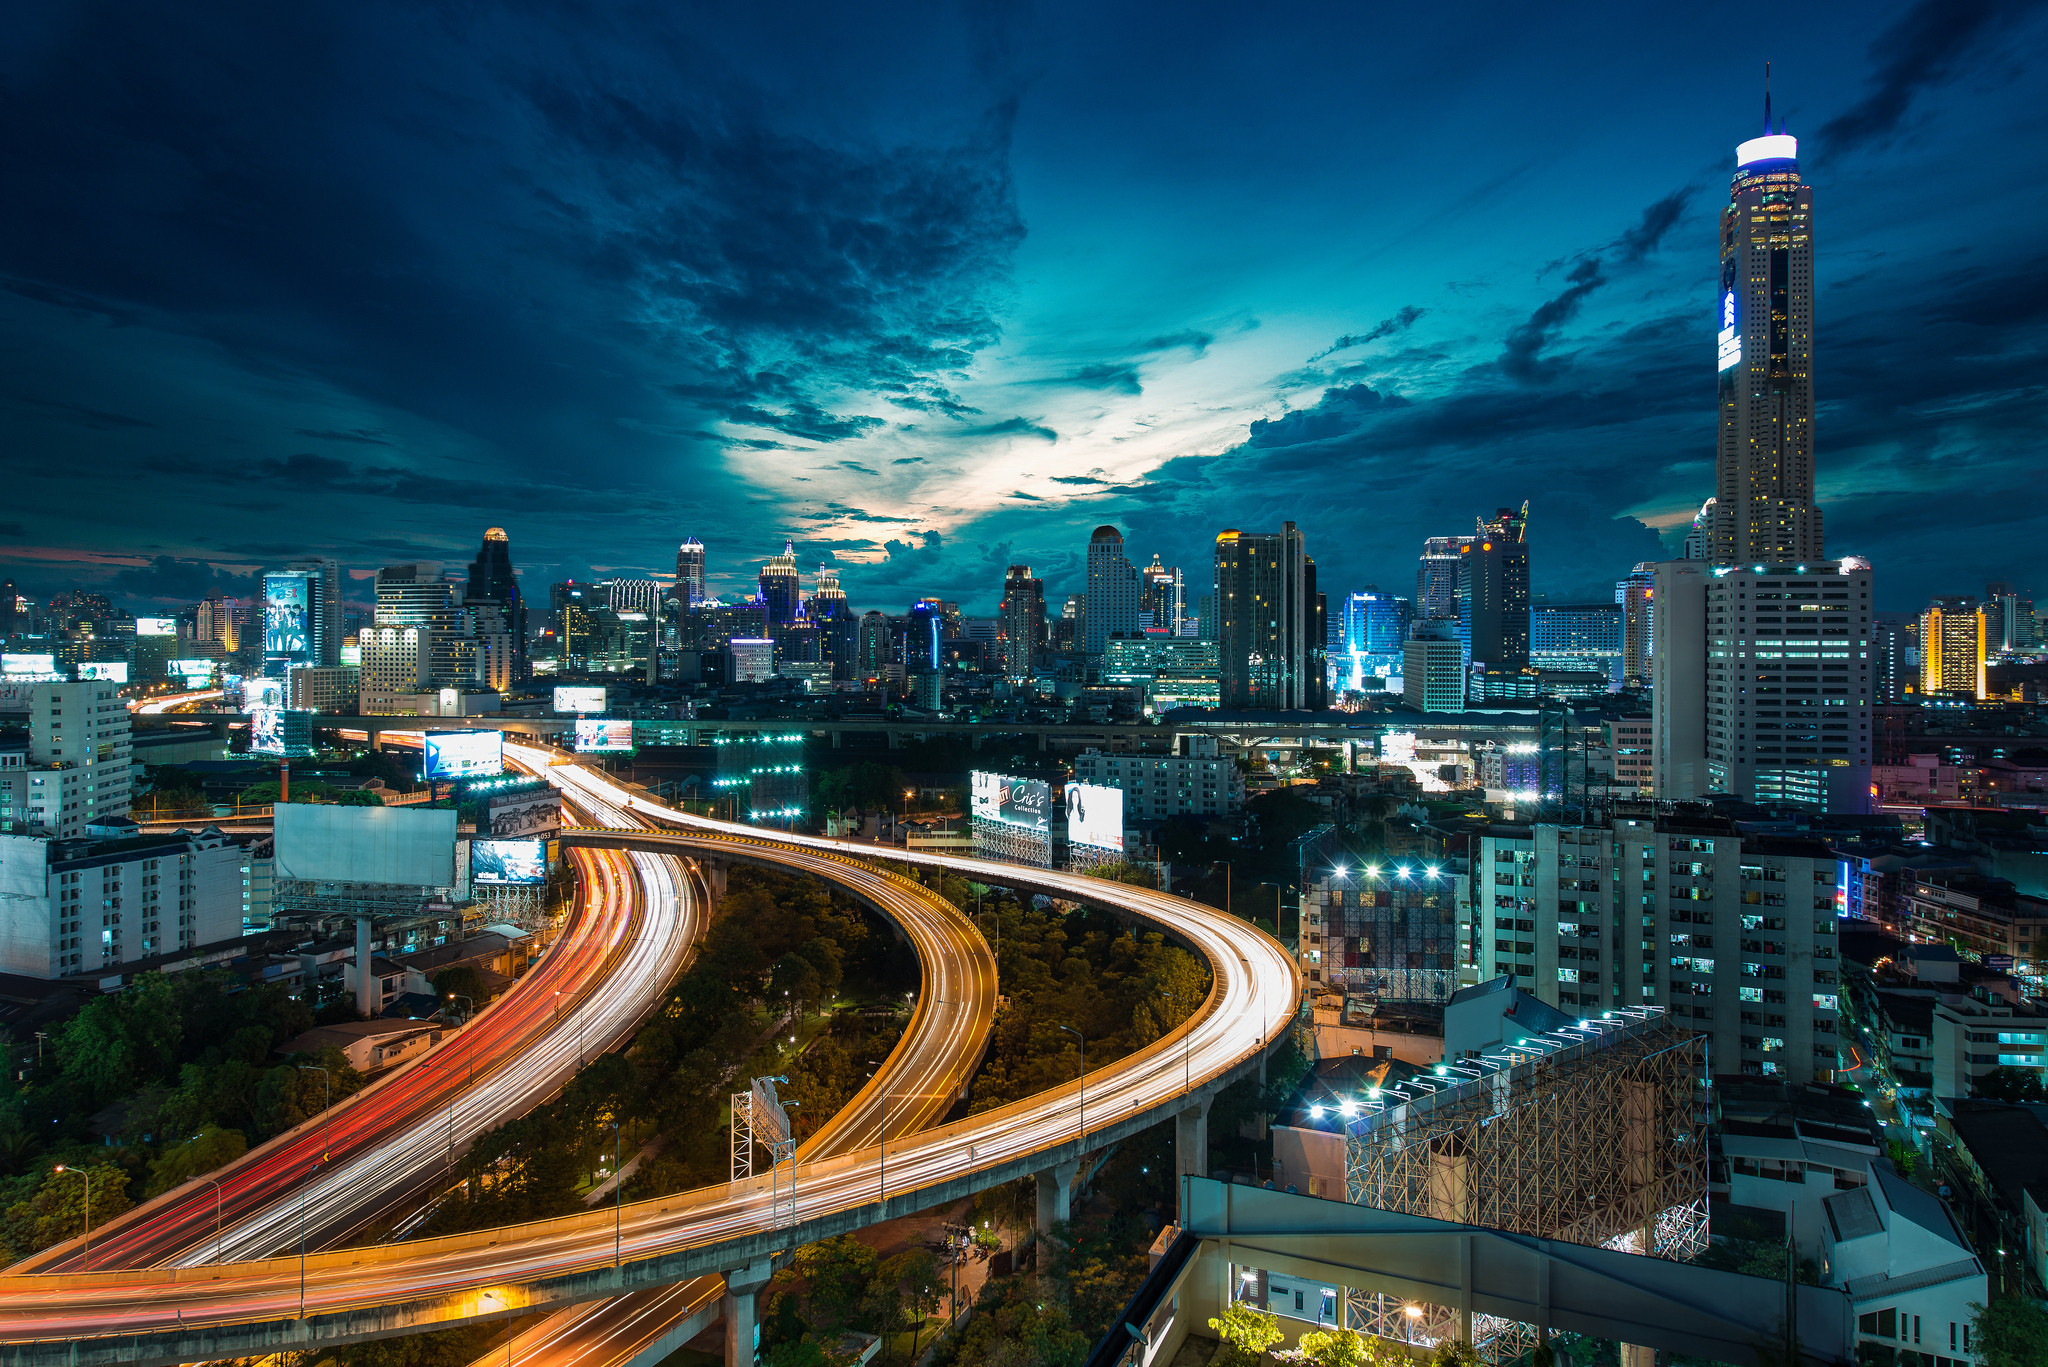 Wallpapers Megapolis Sky Roads night time Skyscrapers Cities Clouds  Building Megalopolis Night Houses